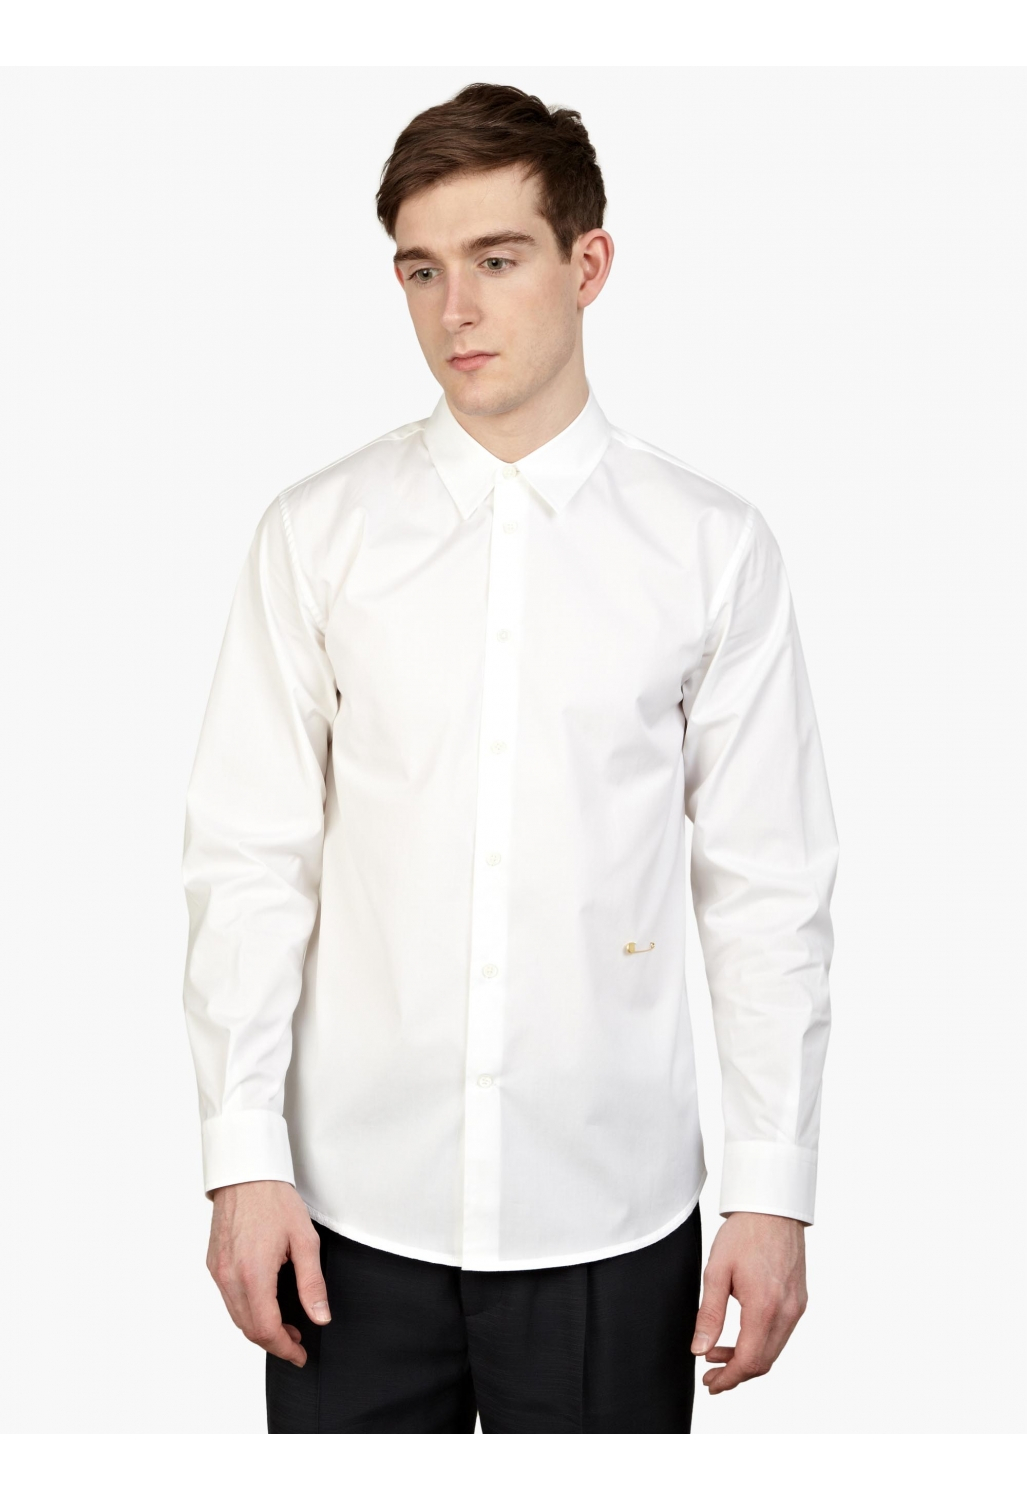 Marc jacobs Men's White Slim-fit Cotton Shirt in White for ...